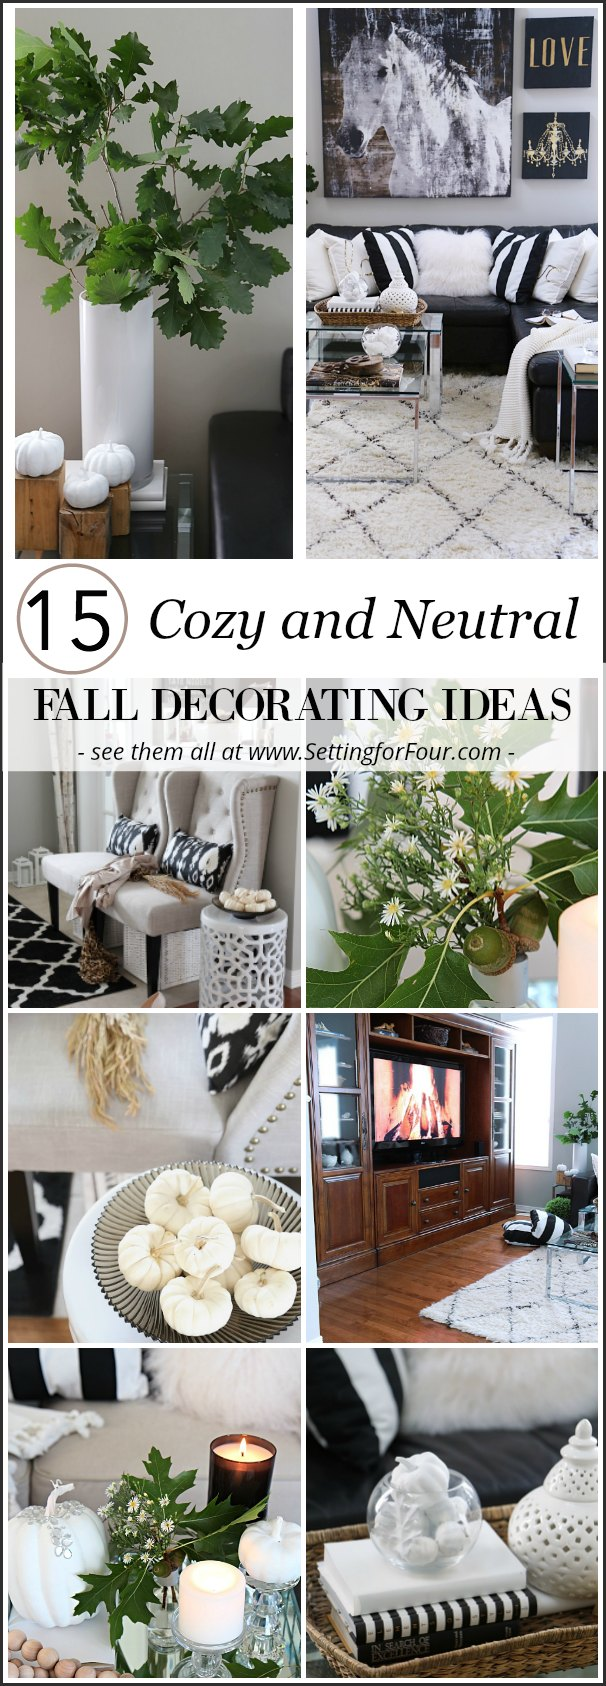 See these 15 Cozy and Neutral Fall Decorating Ideas that will bring a warm and inviting look to your house without a lot of effort. See how you can bring the softer side of fall to your home with these non-orange decor ideas.